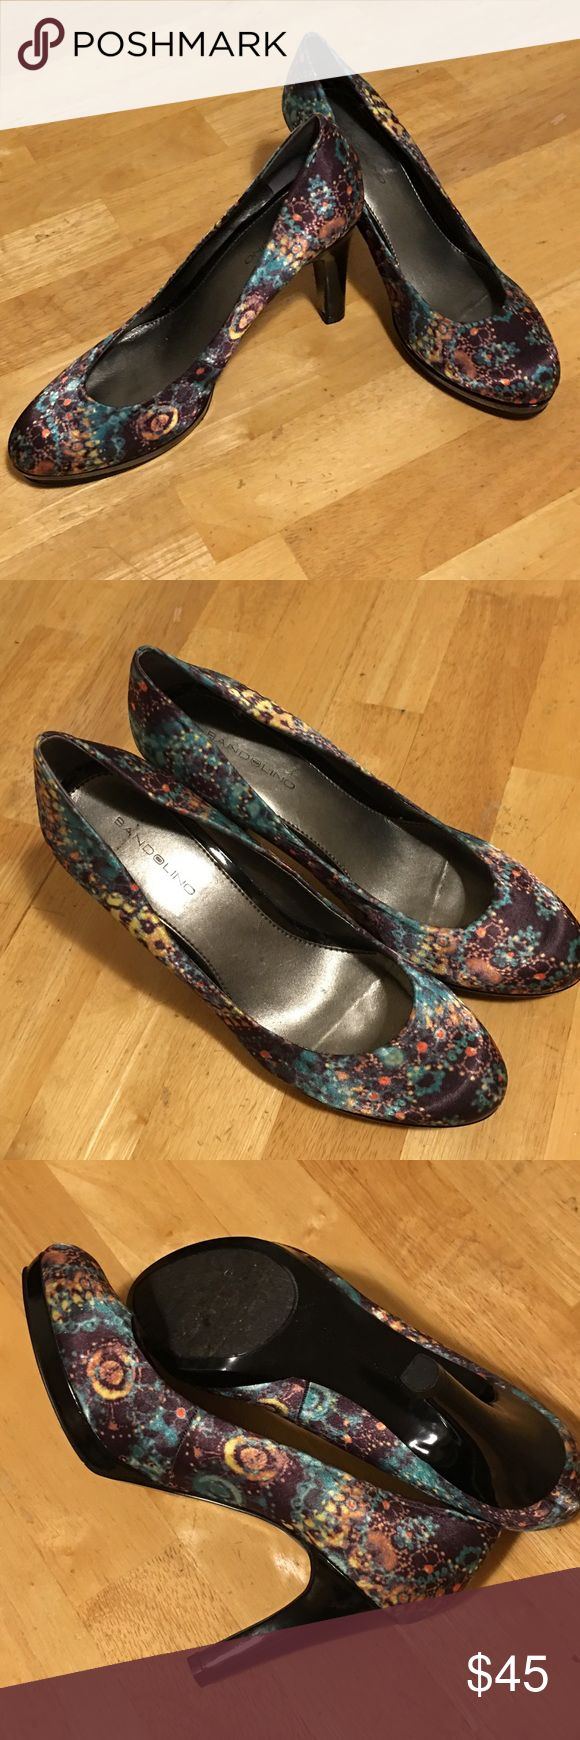 """🆕Listing - Bandolino Multi-Colored Heels Bandolino Satin Finish Heels with a Unique Muti-Colored Design. Heel height is 4"""".  Only worn once. Bandolino Shoes Heels"""